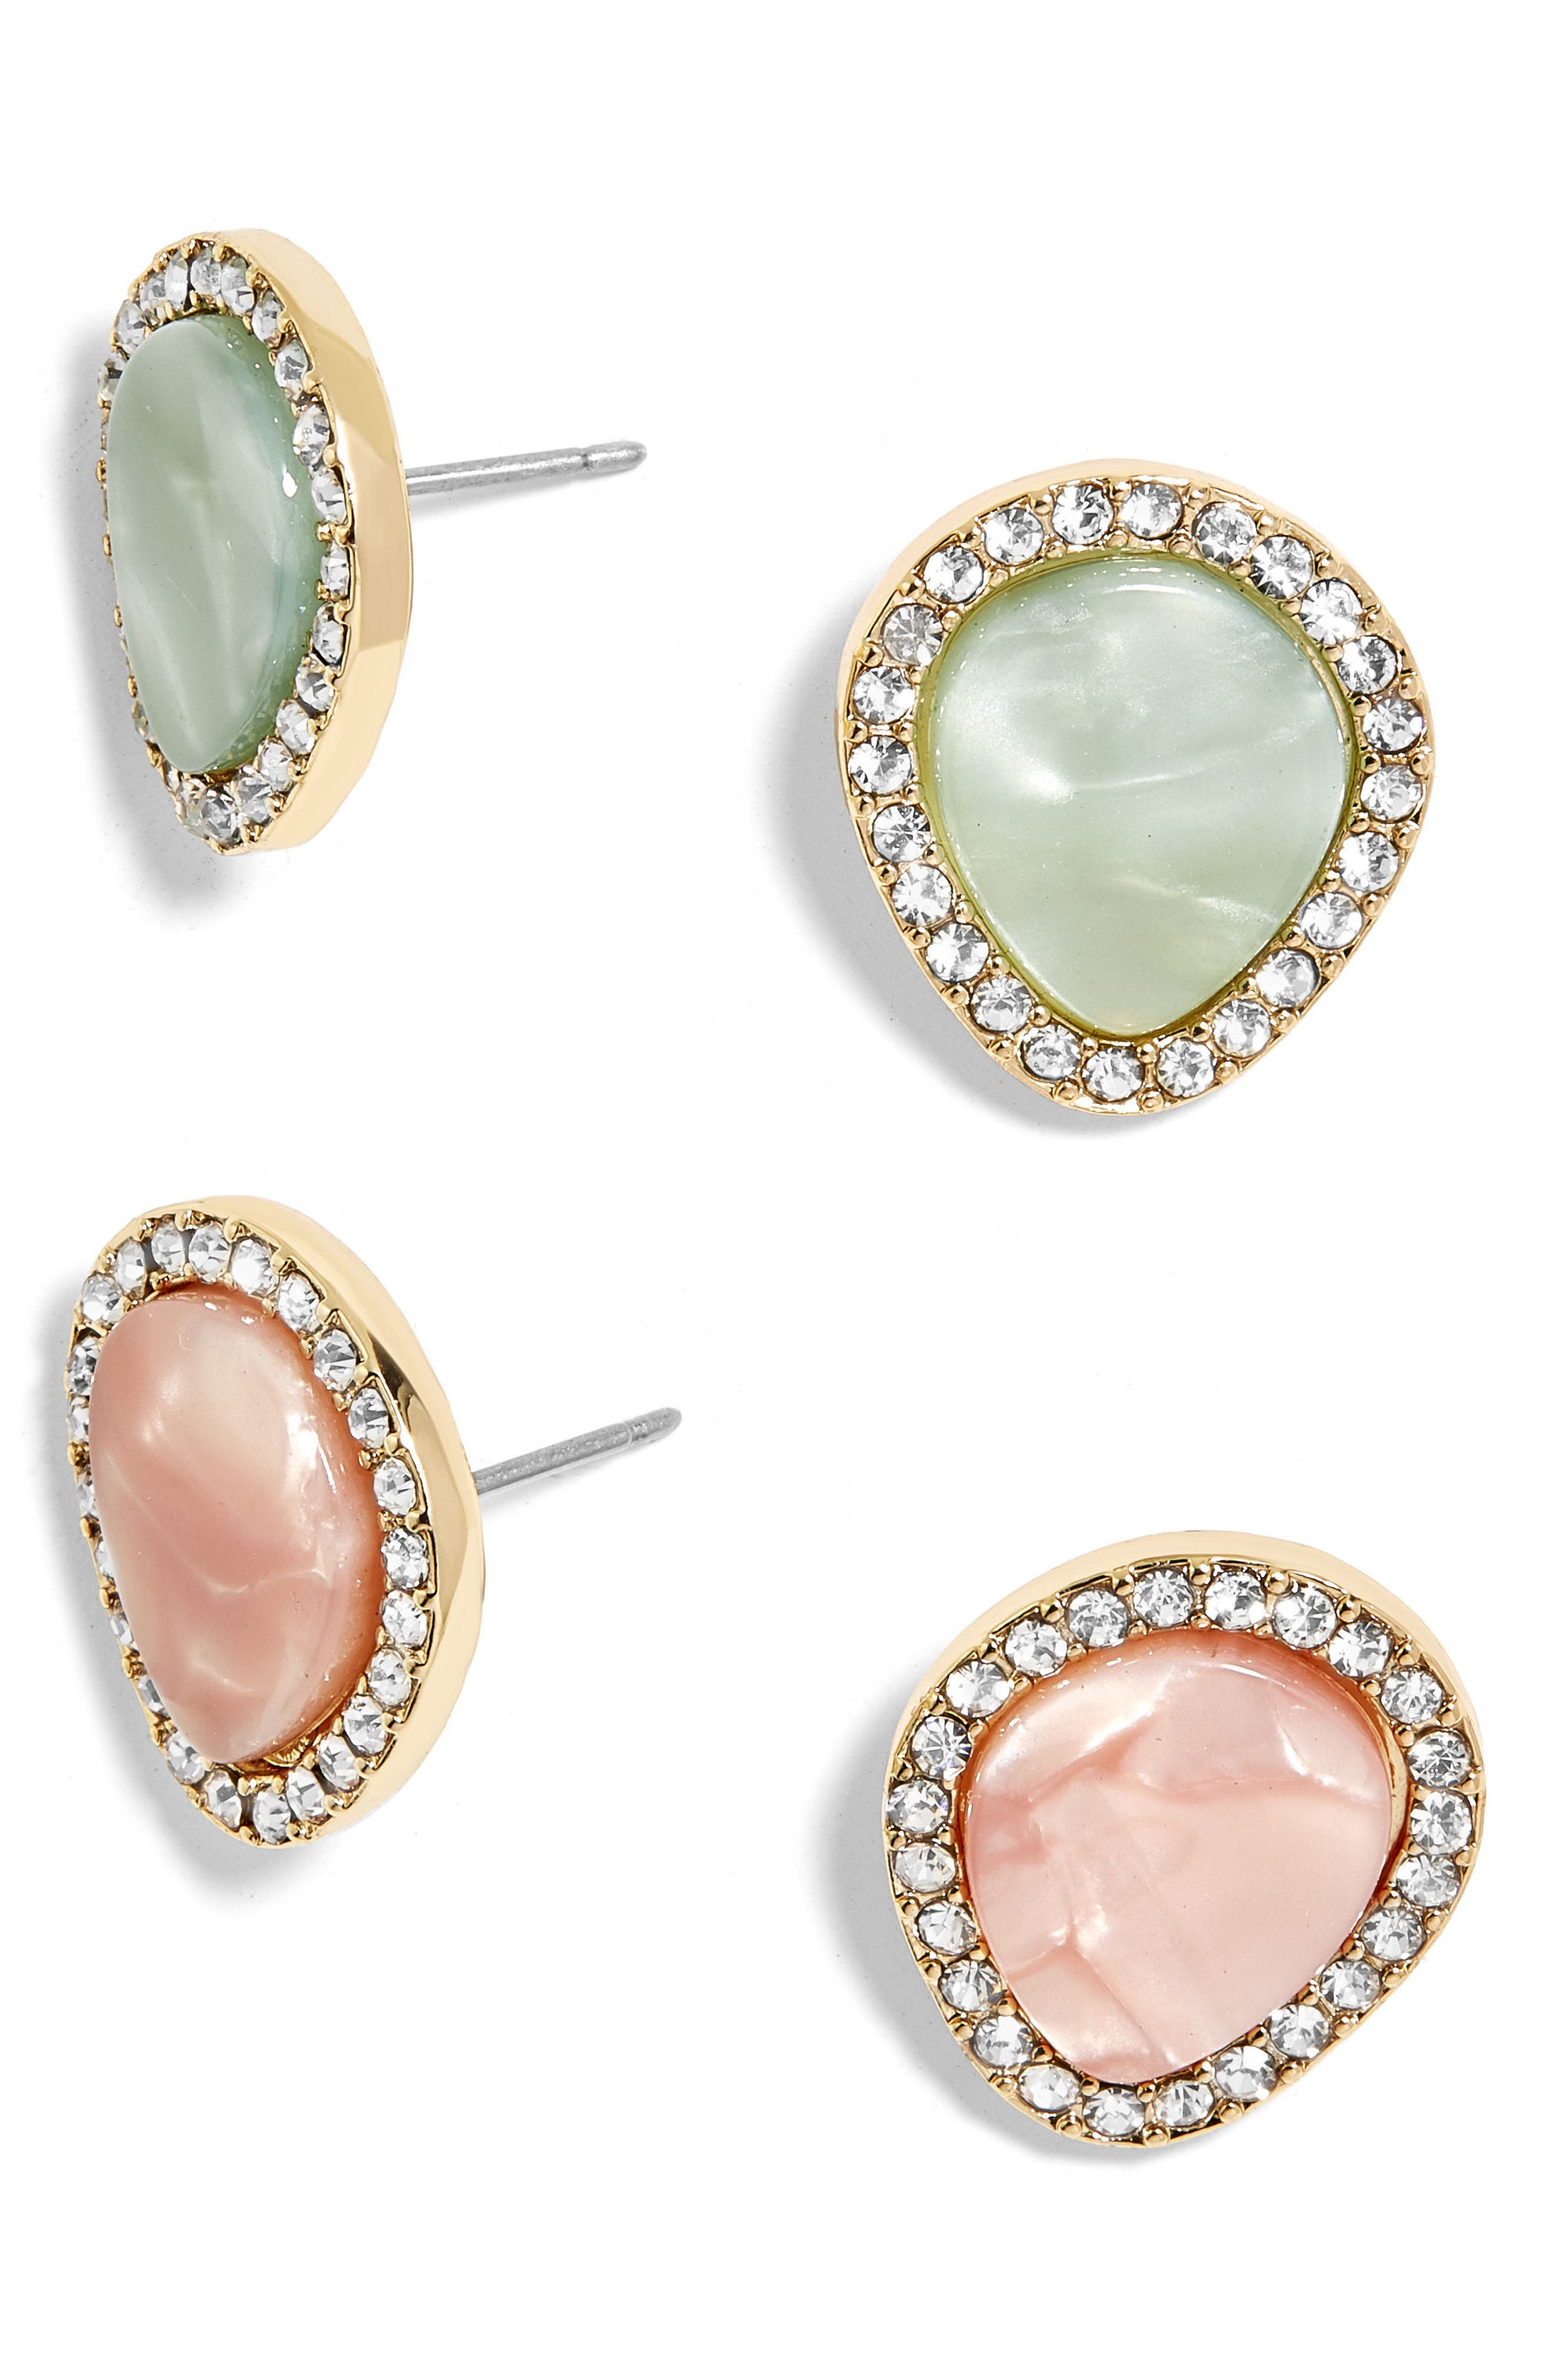 Set of 2 Crystal Encrusted Stud Earrings,                             Main thumbnail 1, color,                             Blush/ Mint